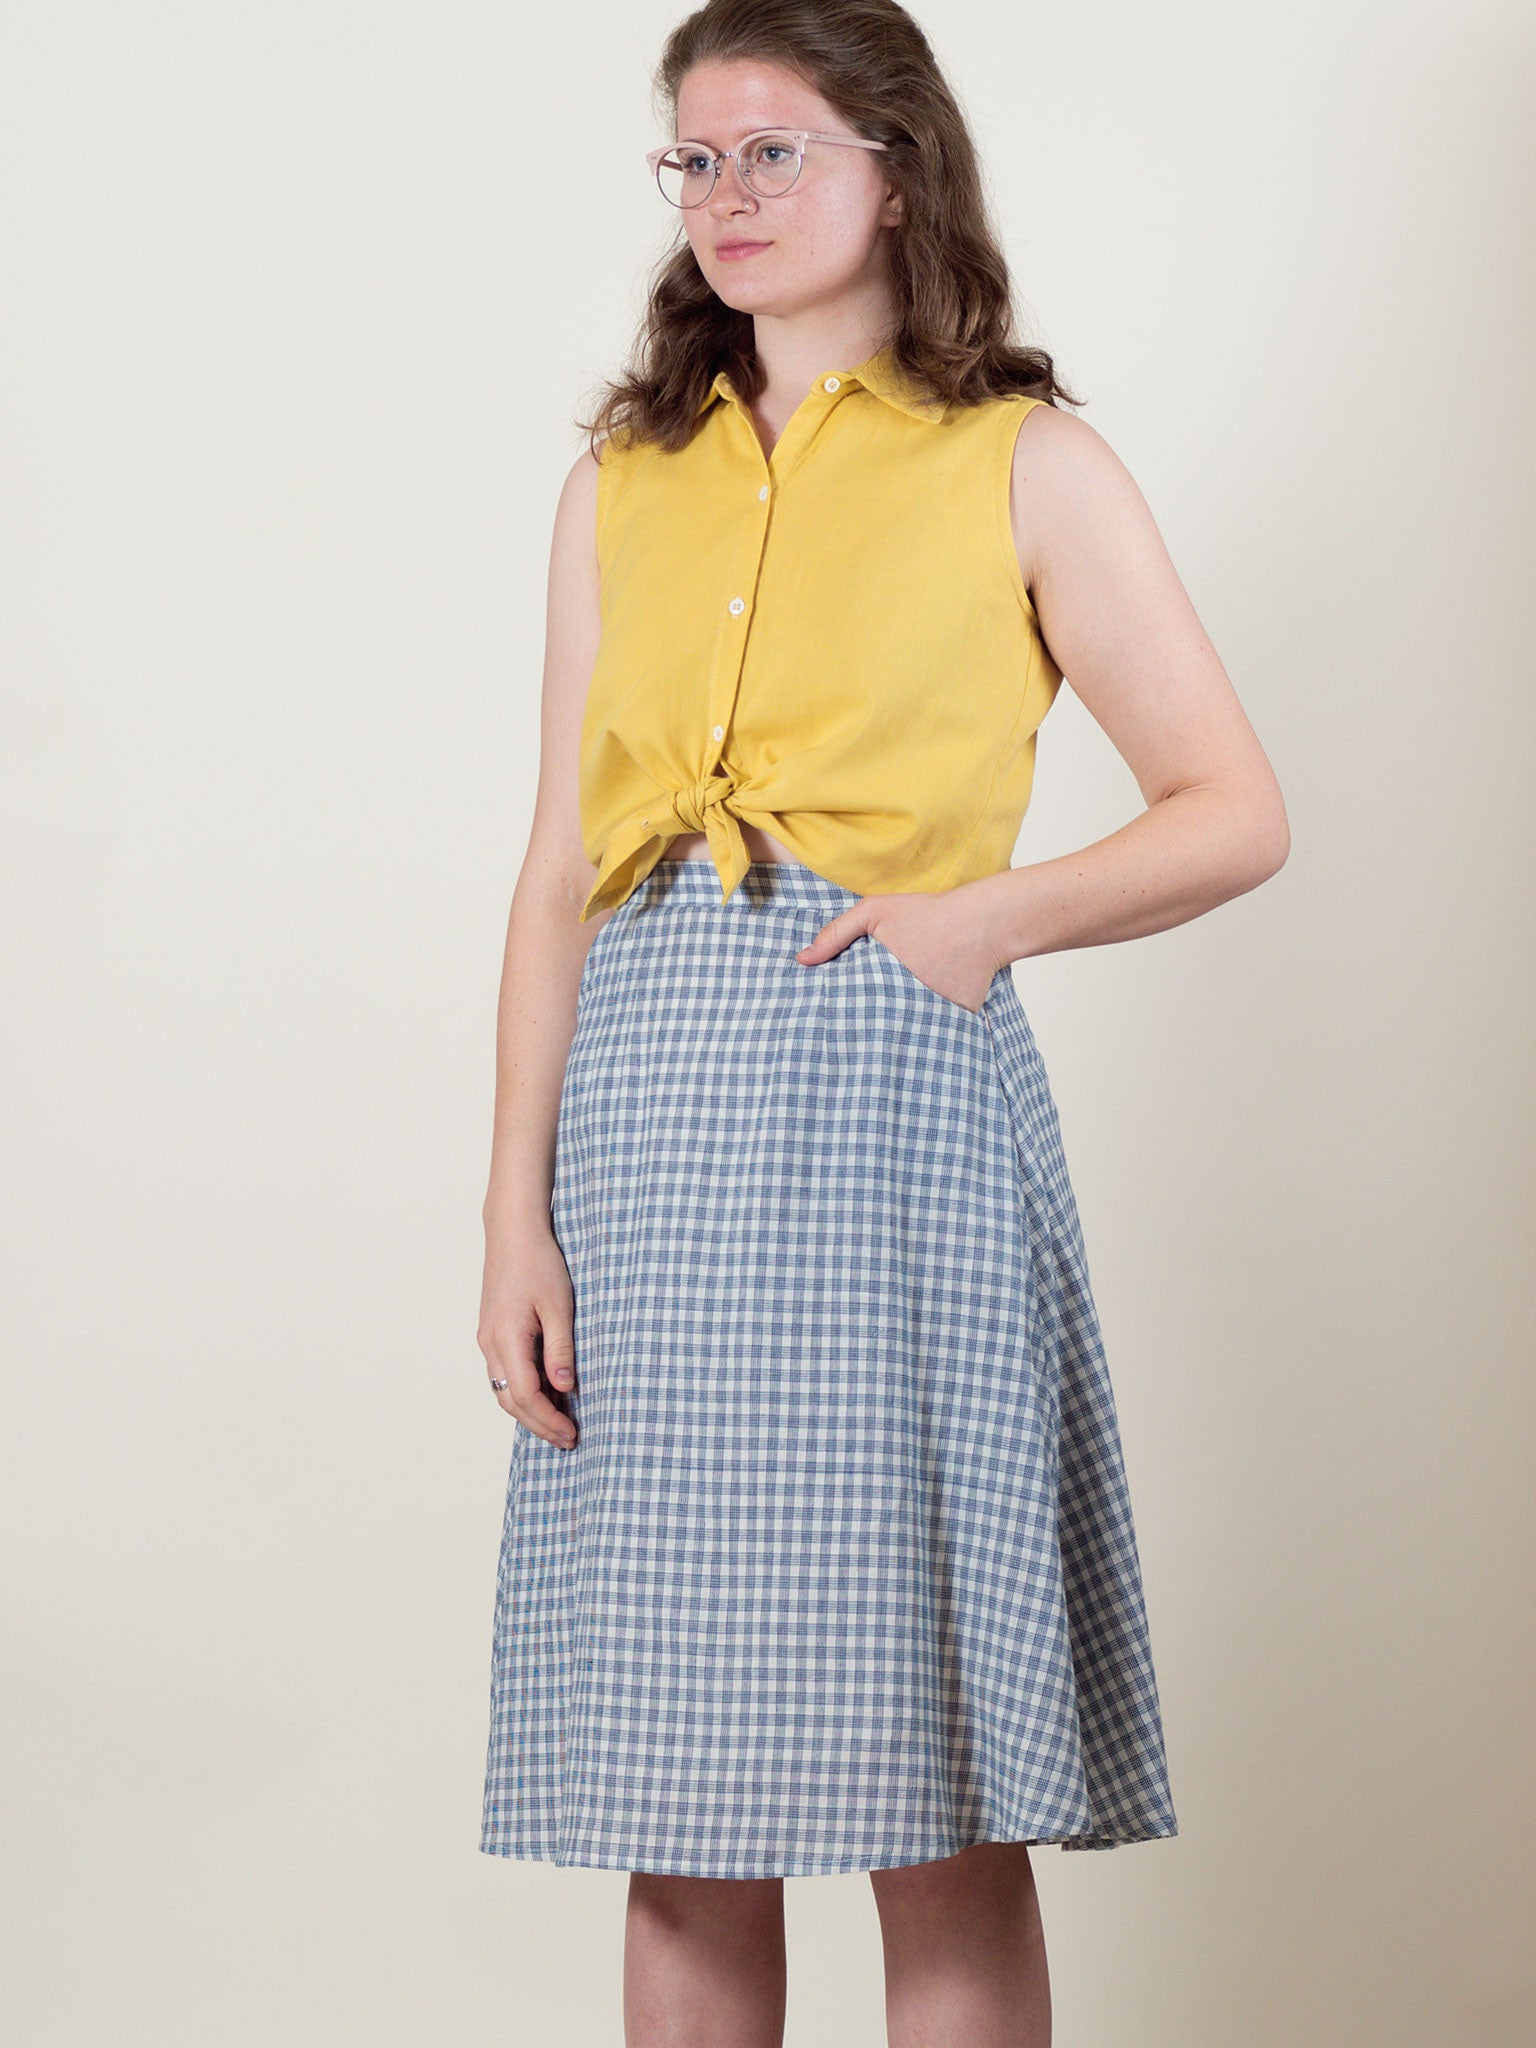 Soleil Skirt in Navy Check